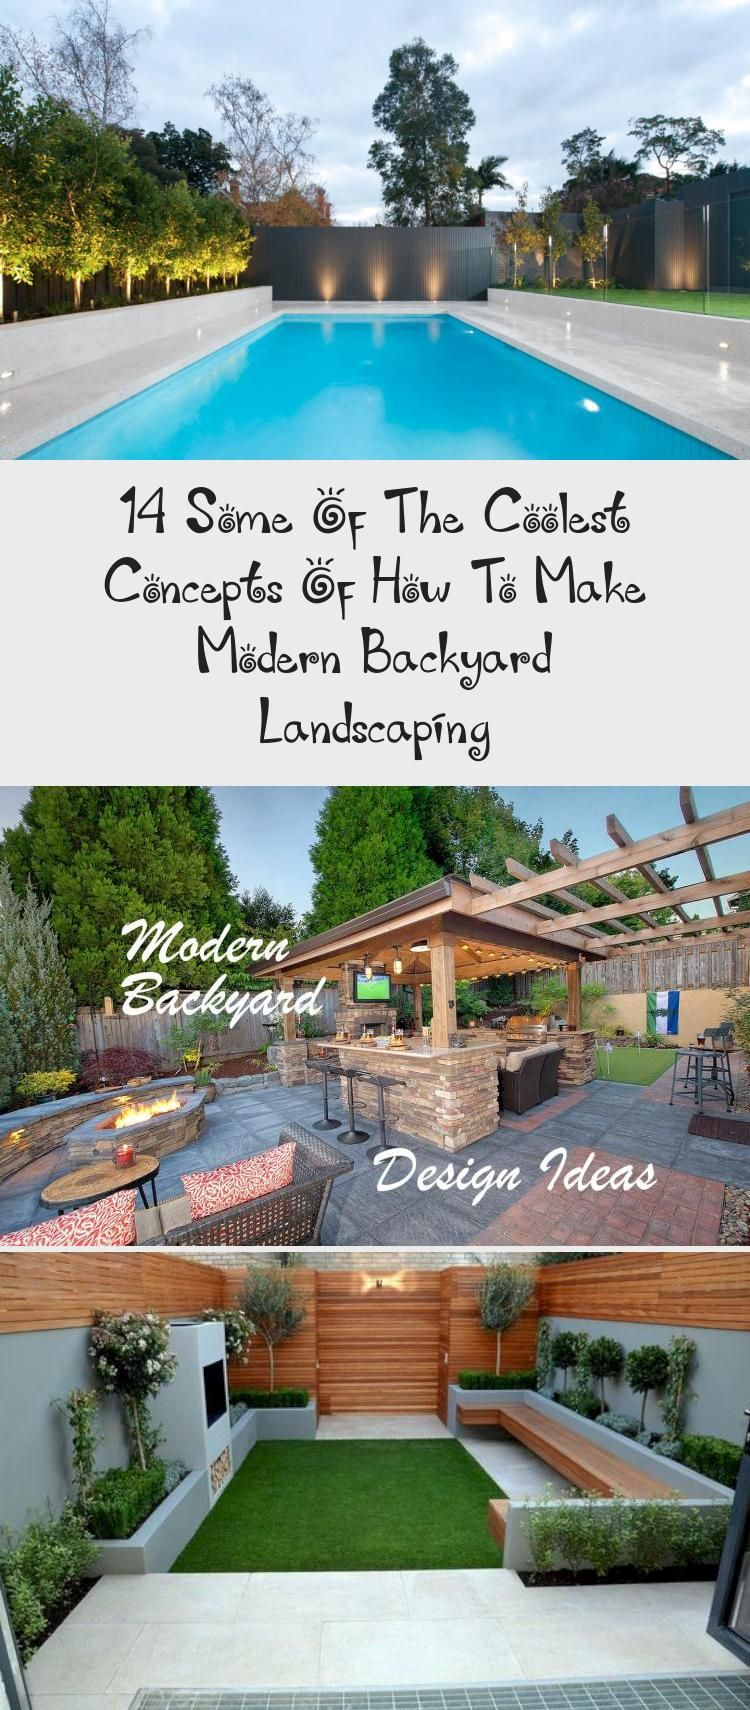 14 Some Of The Coolest Concepts Of How To Make Modern Backyard Landscaping